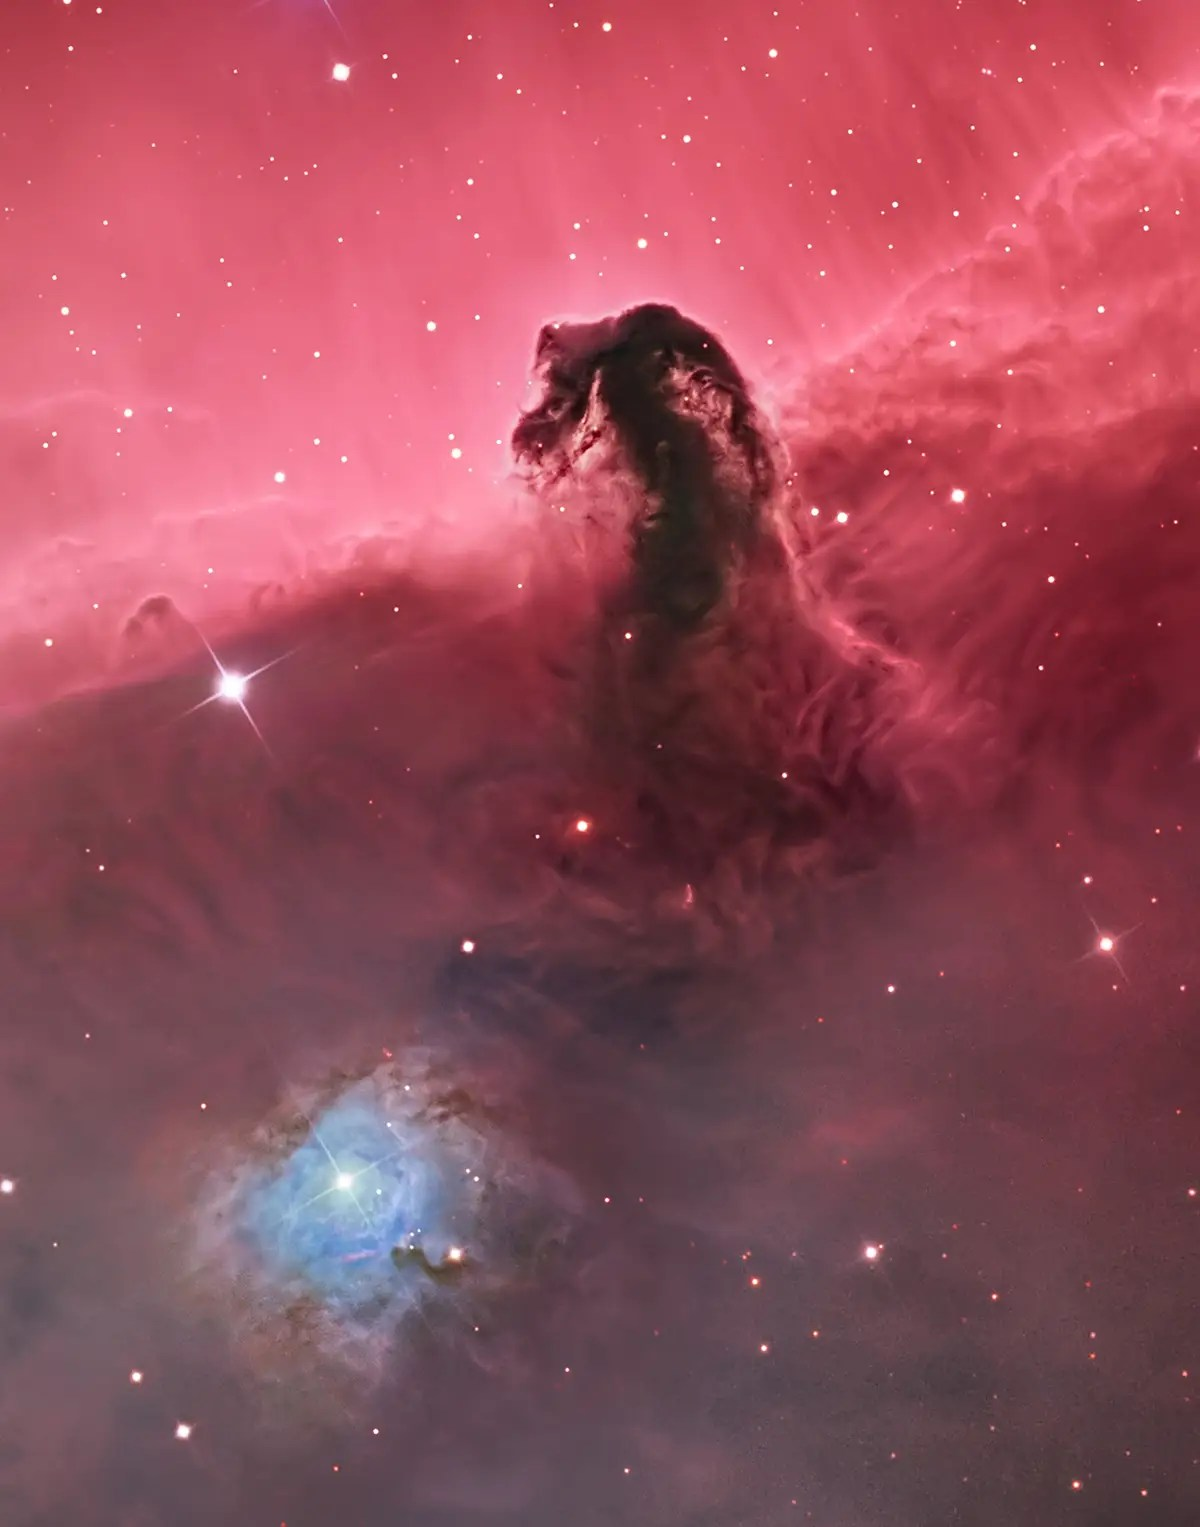 The winning photograph, taken by Bill Synder, is a stunning shot of the Horsehead Nebula. Snyder chose a wider angle for the shot, further depicting the awe-inducing scale of this massive form.